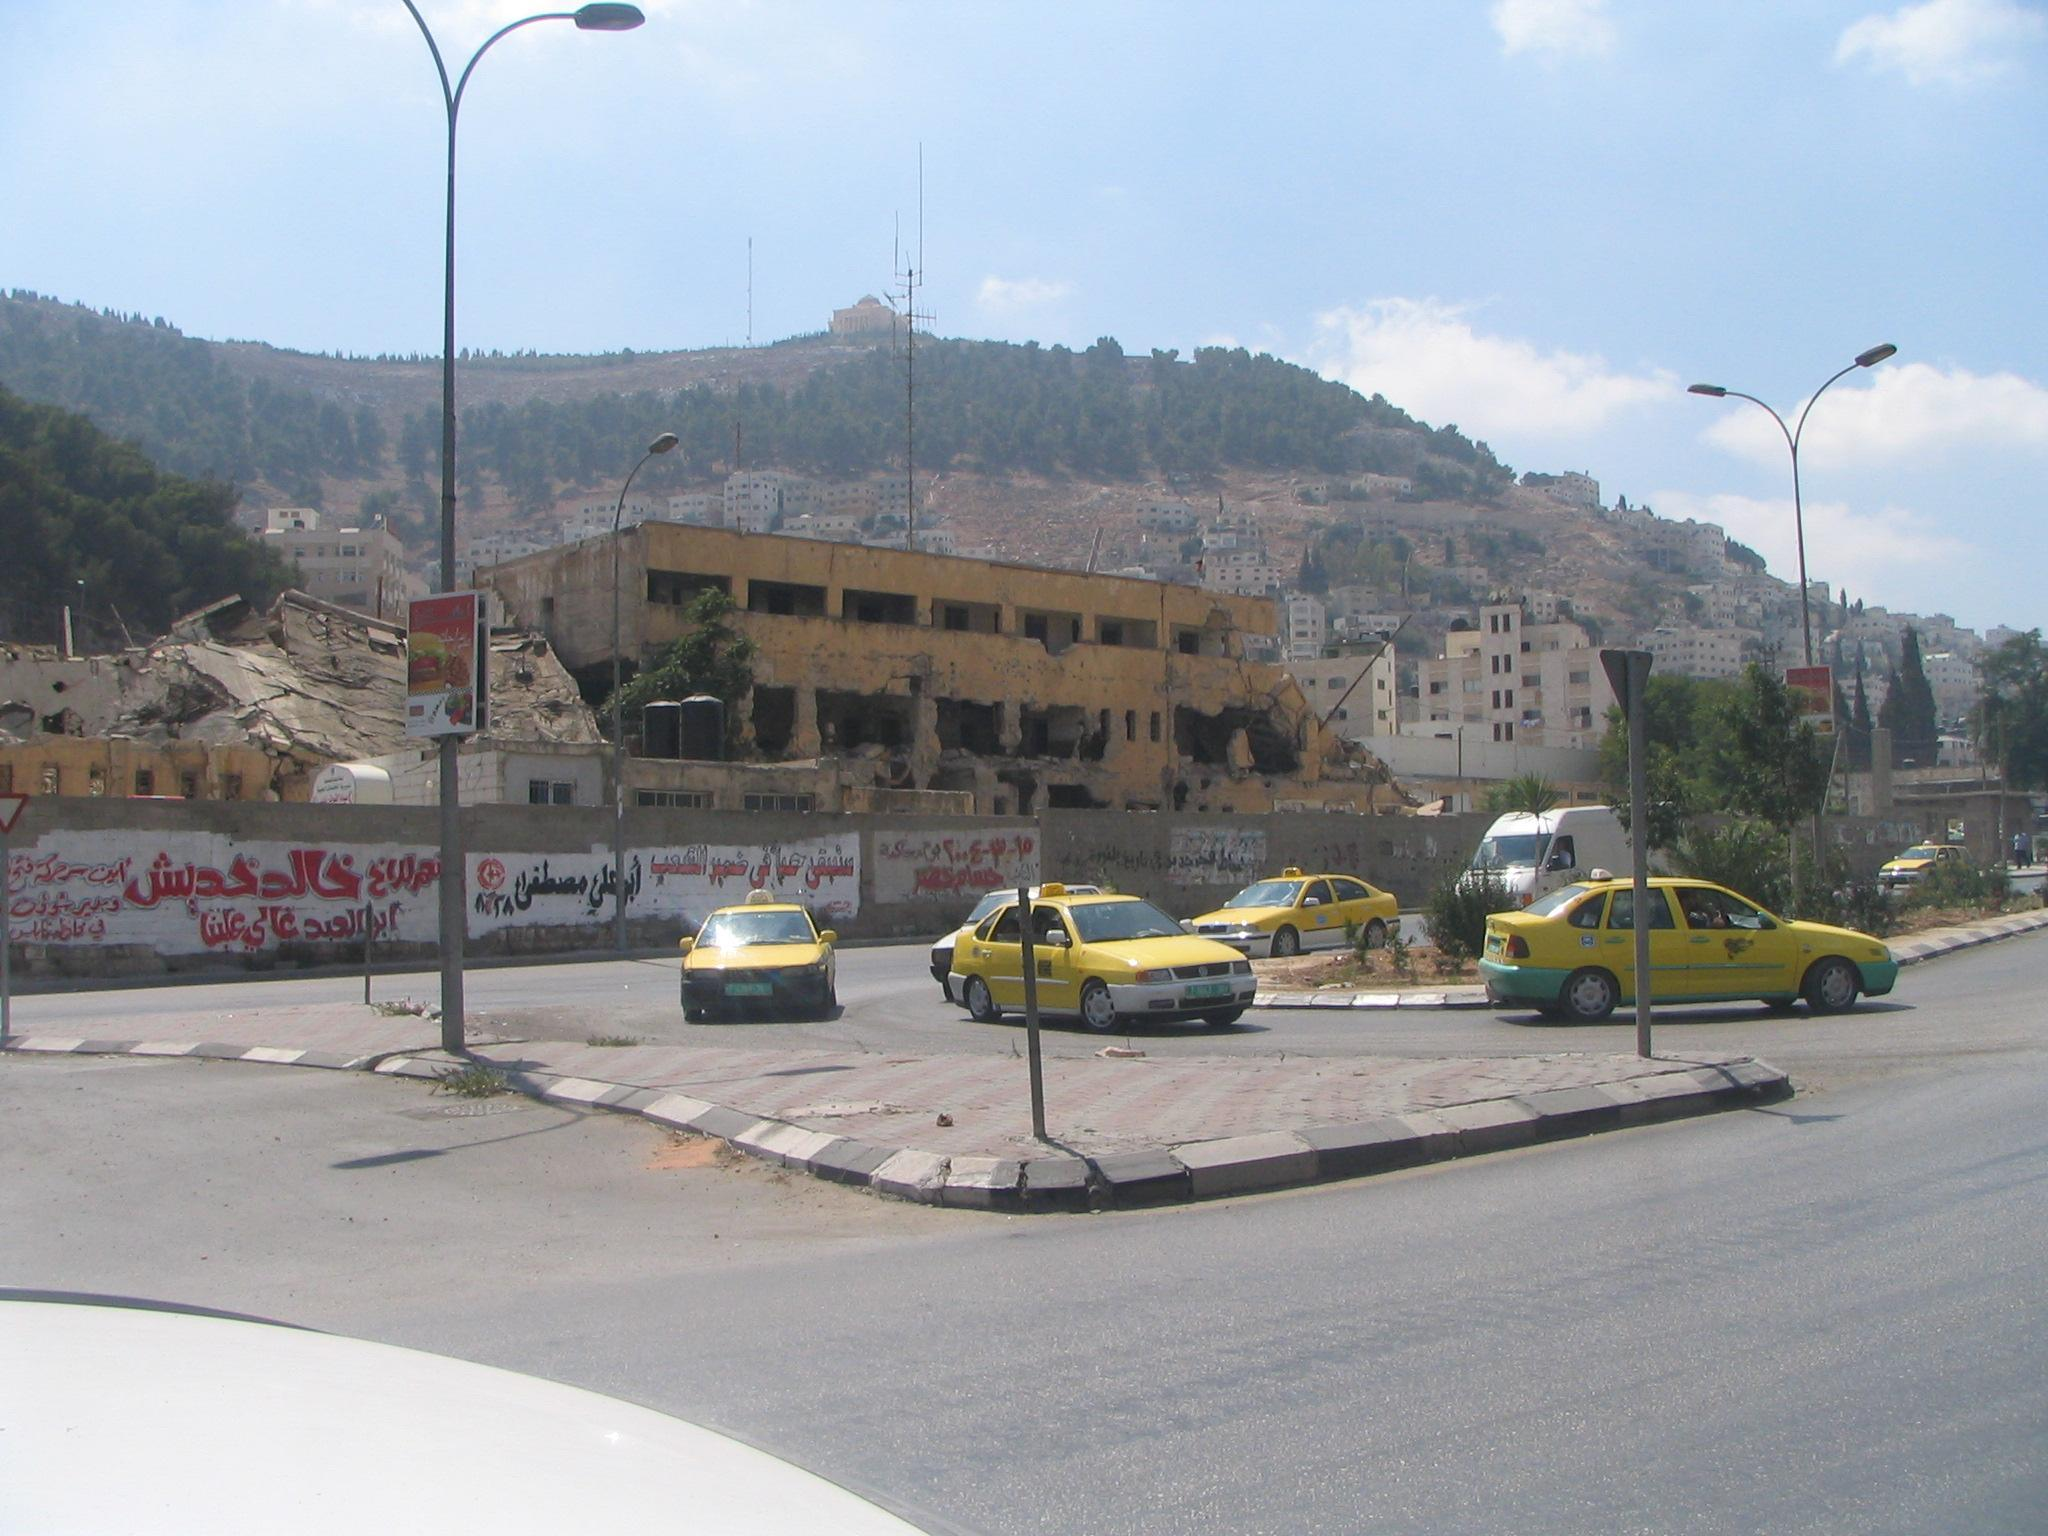 Nablus - نابلس : Al-Muqata'ah compound after its destruction by the Israeli forces in 2006